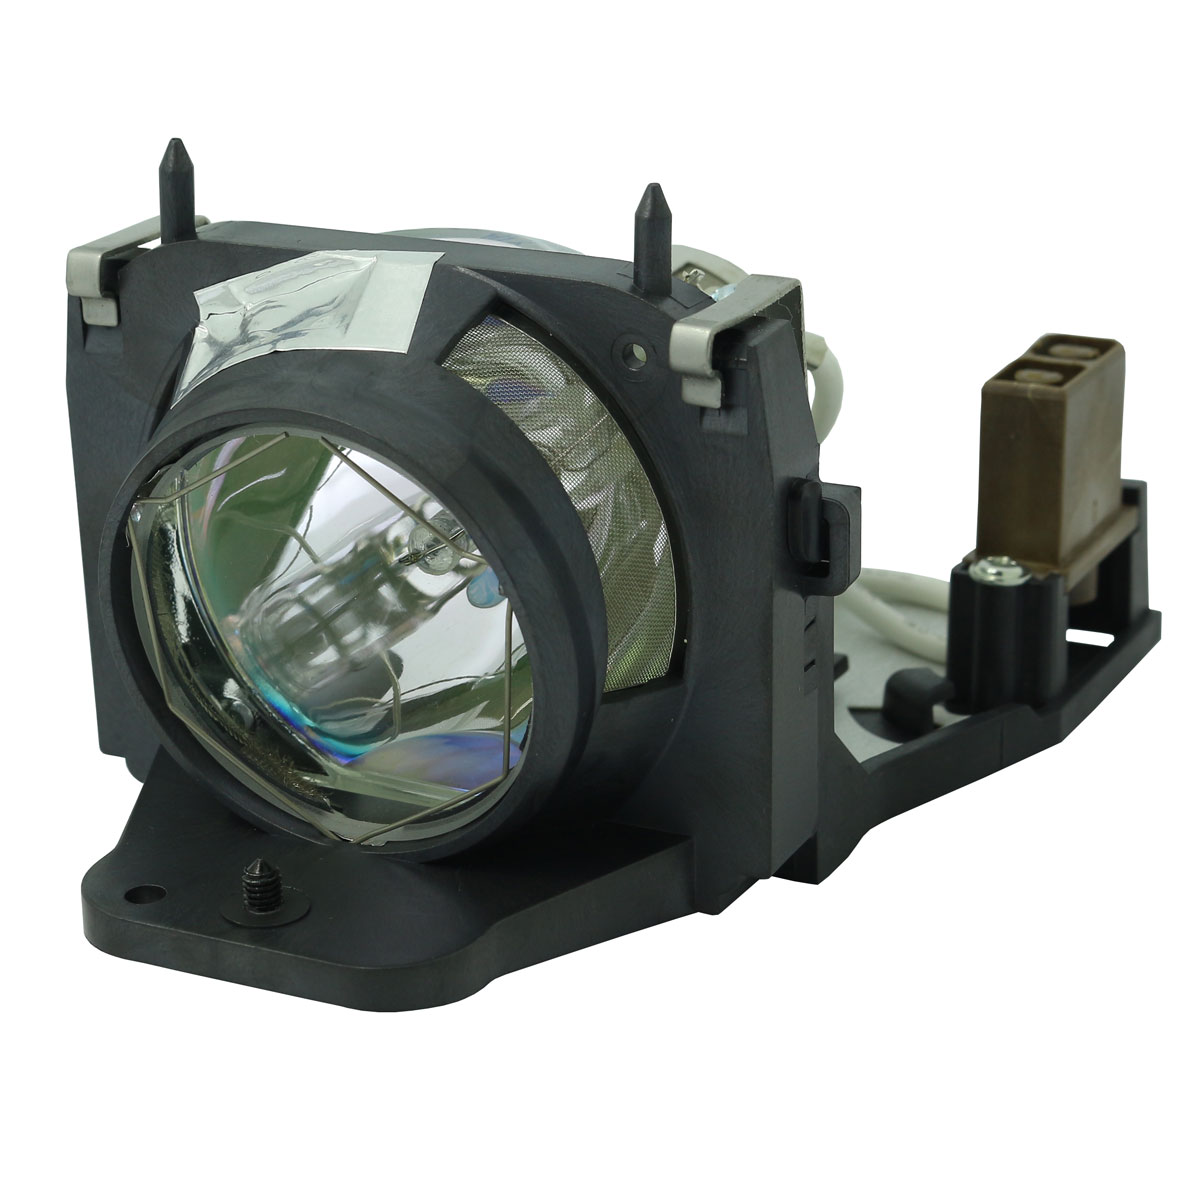 Lamp Housing For A+K AstroBeam X230 Projector DLP LCD Bulb